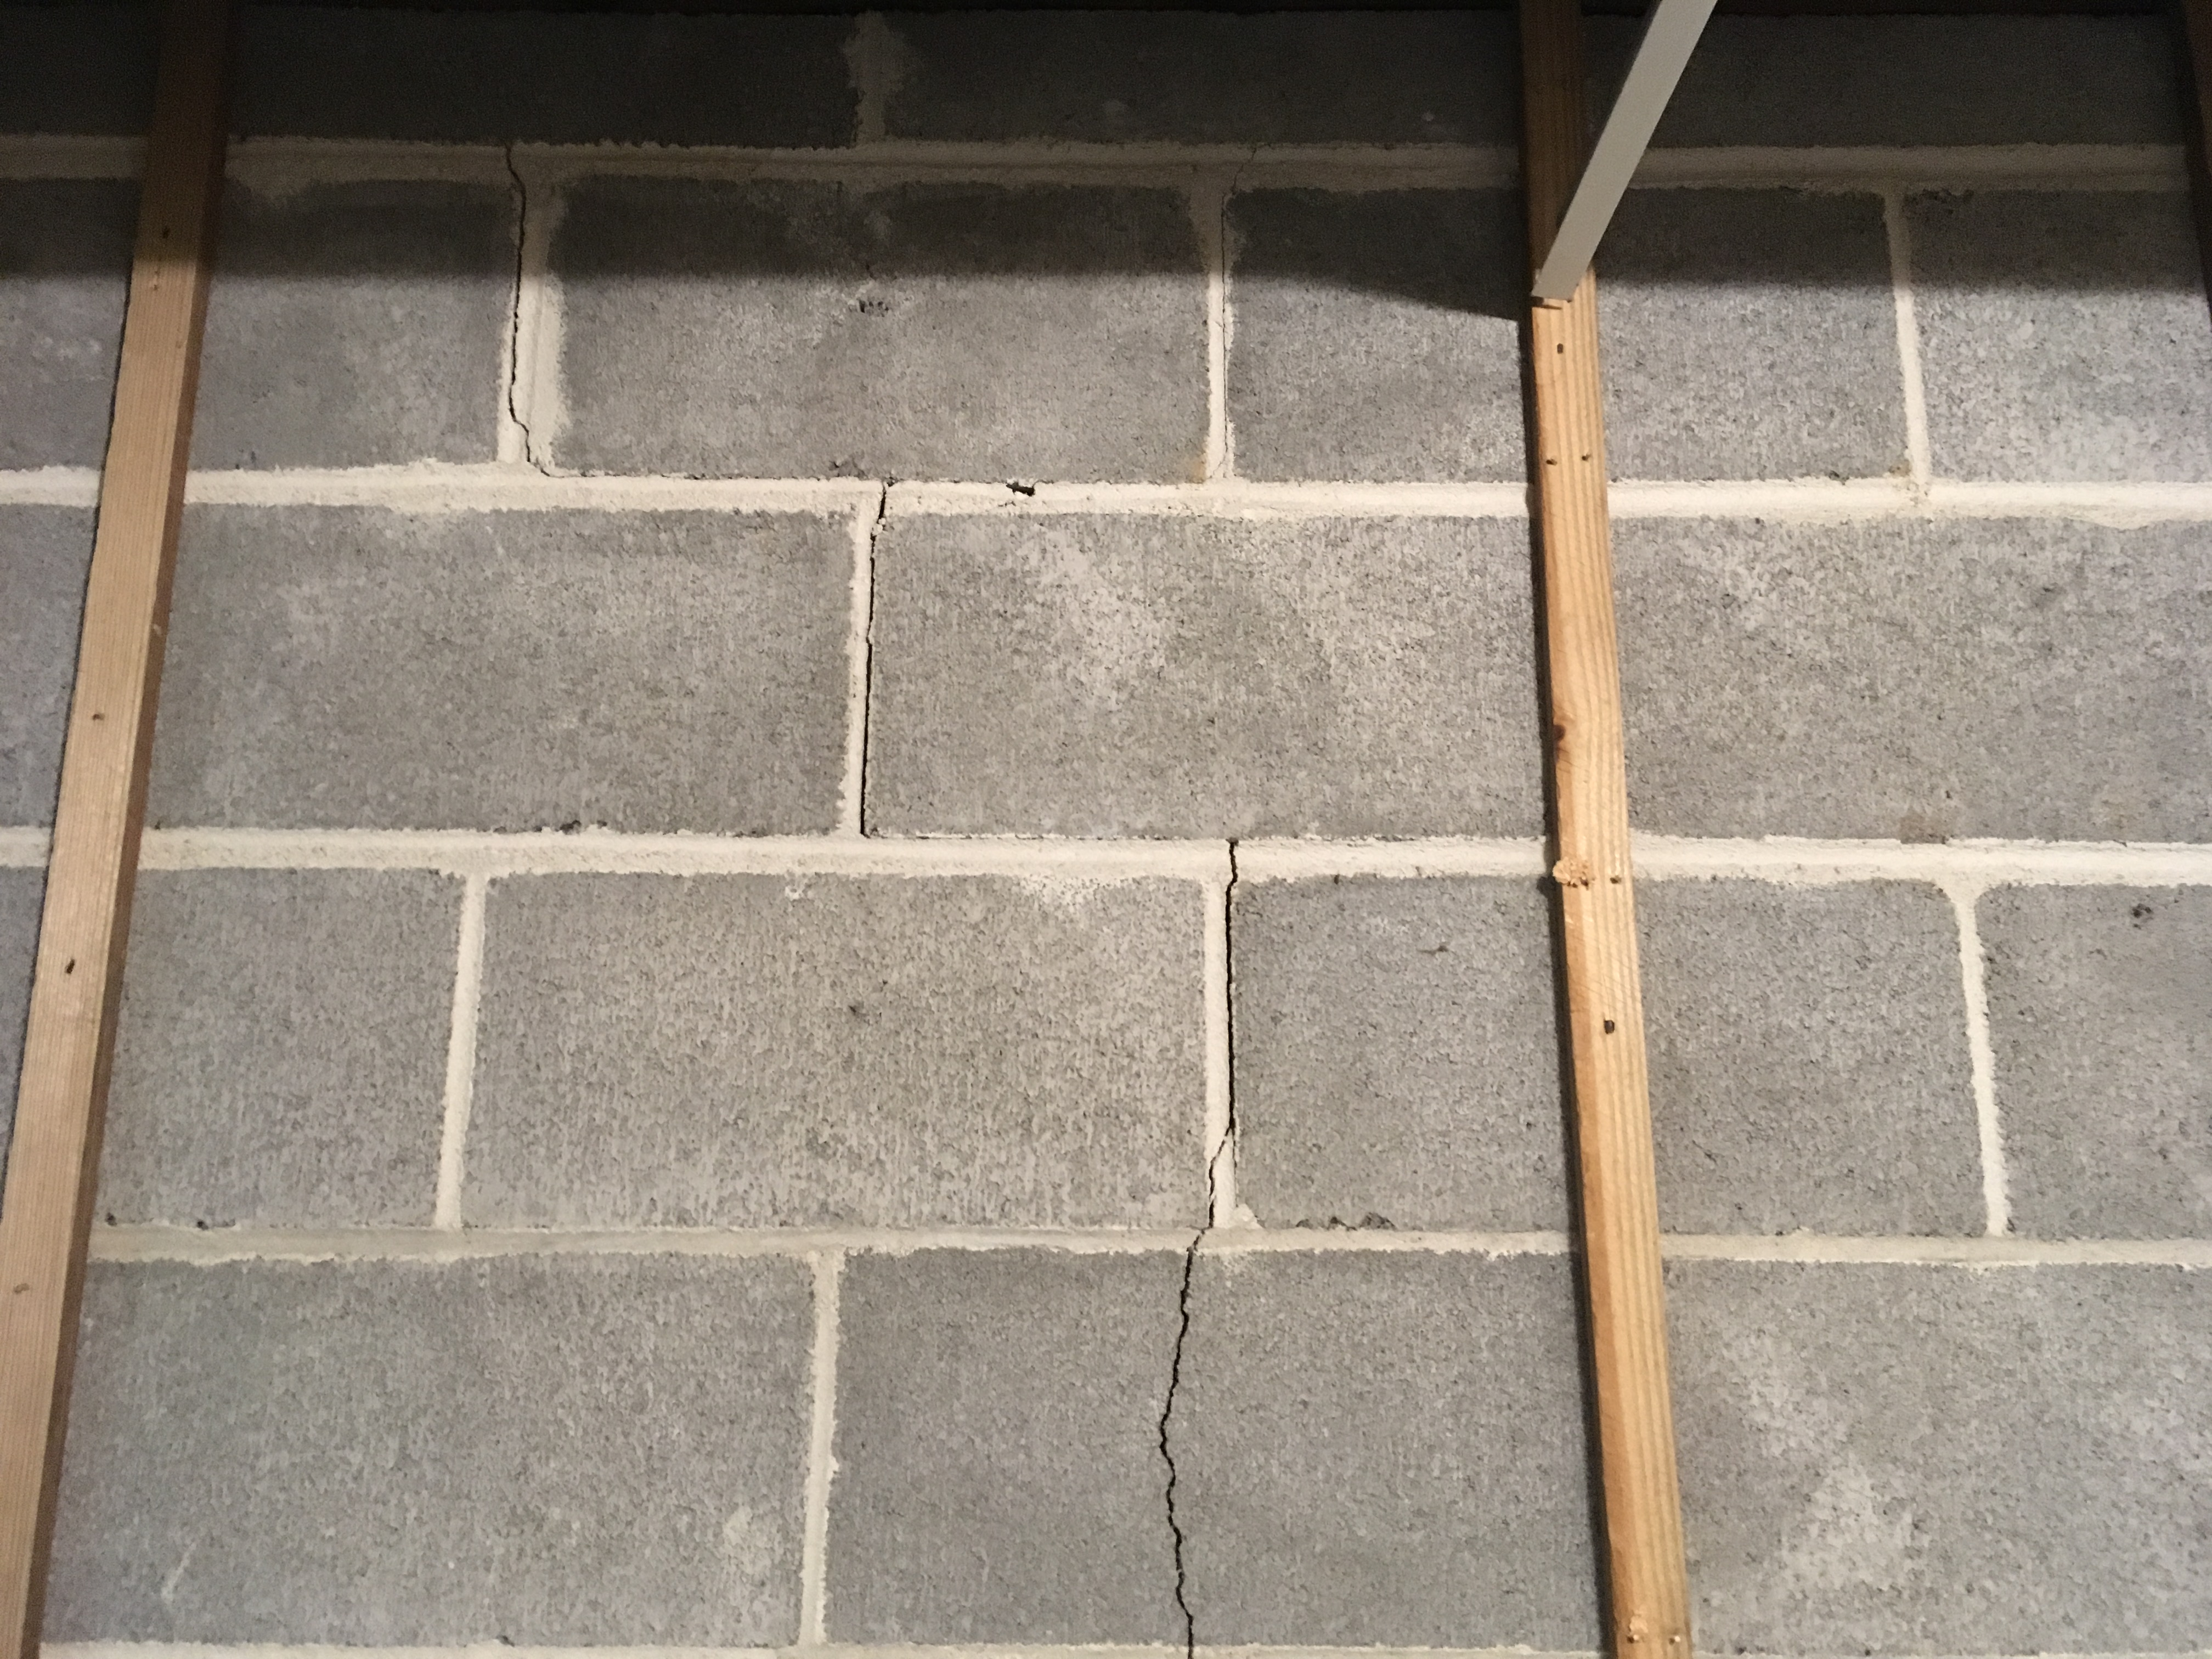 Stair stepping interior crack on basement block wall